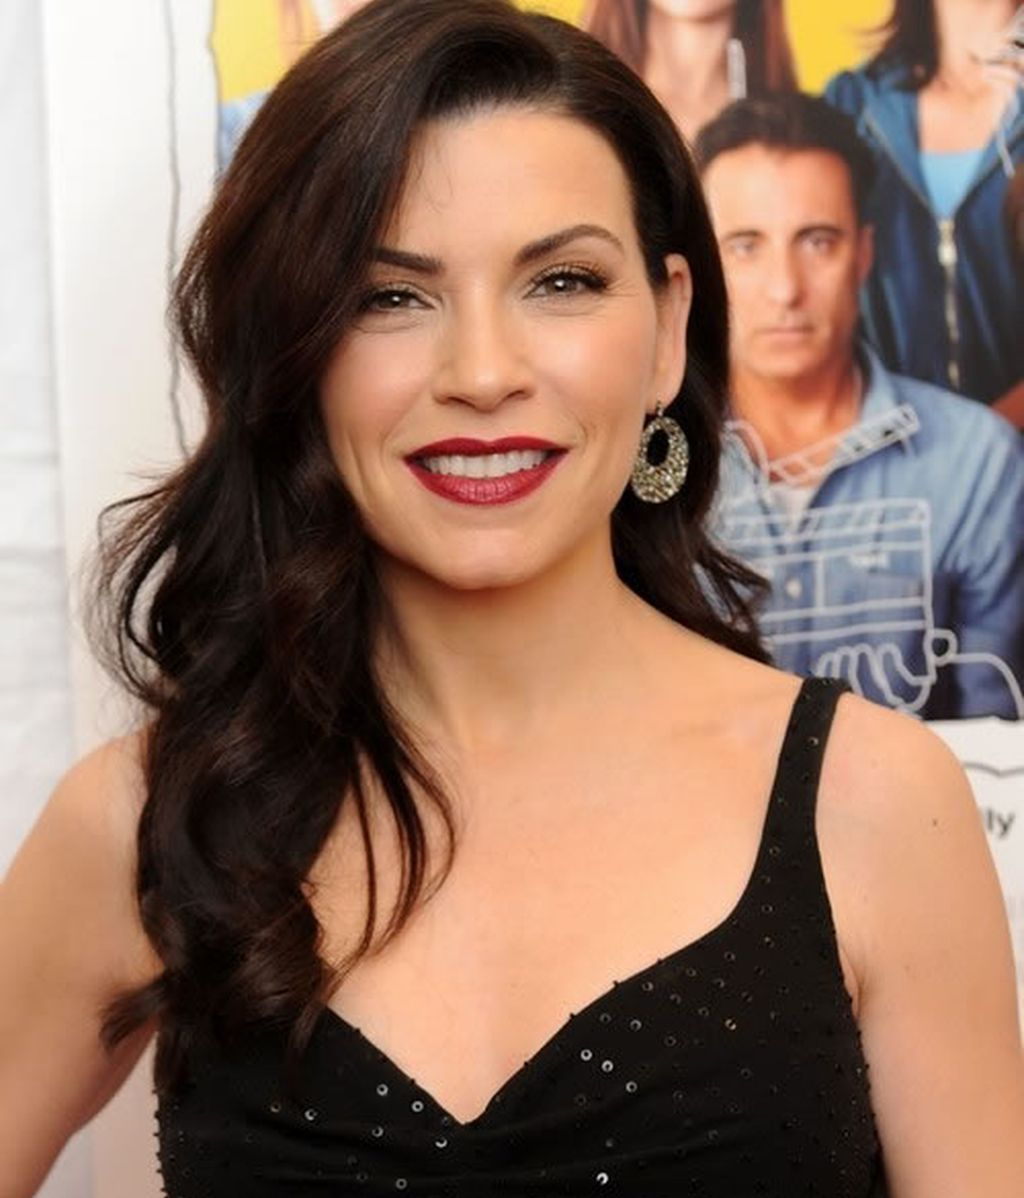 Julianna Margulies, Forbes